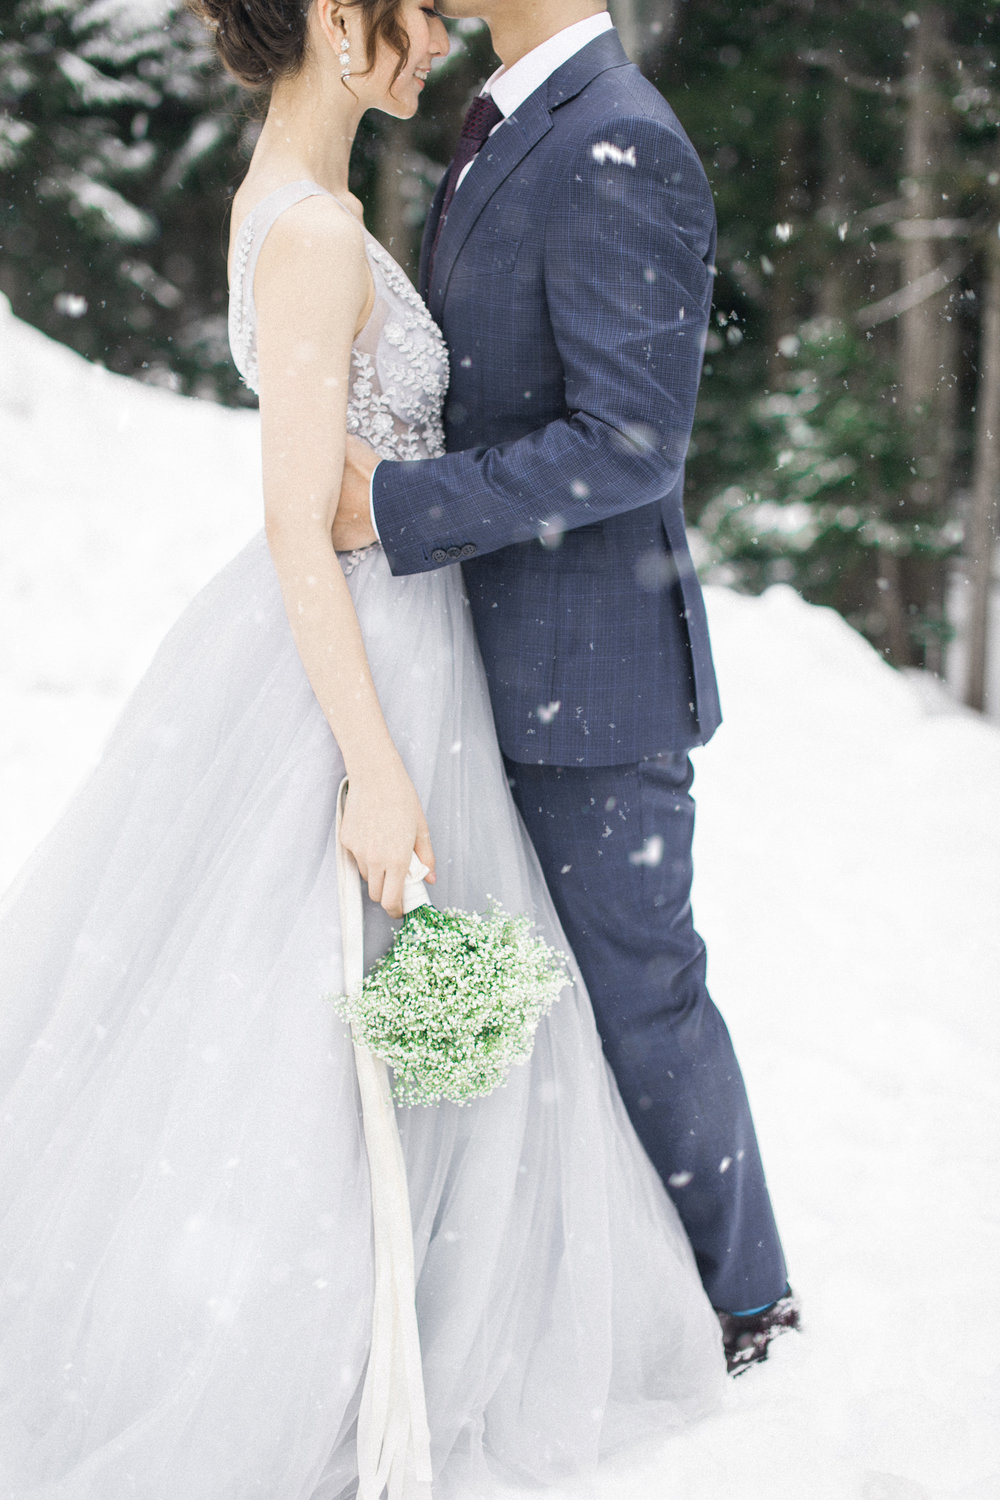 20170225LeslyJerryPreWedding-11 copy.jpg